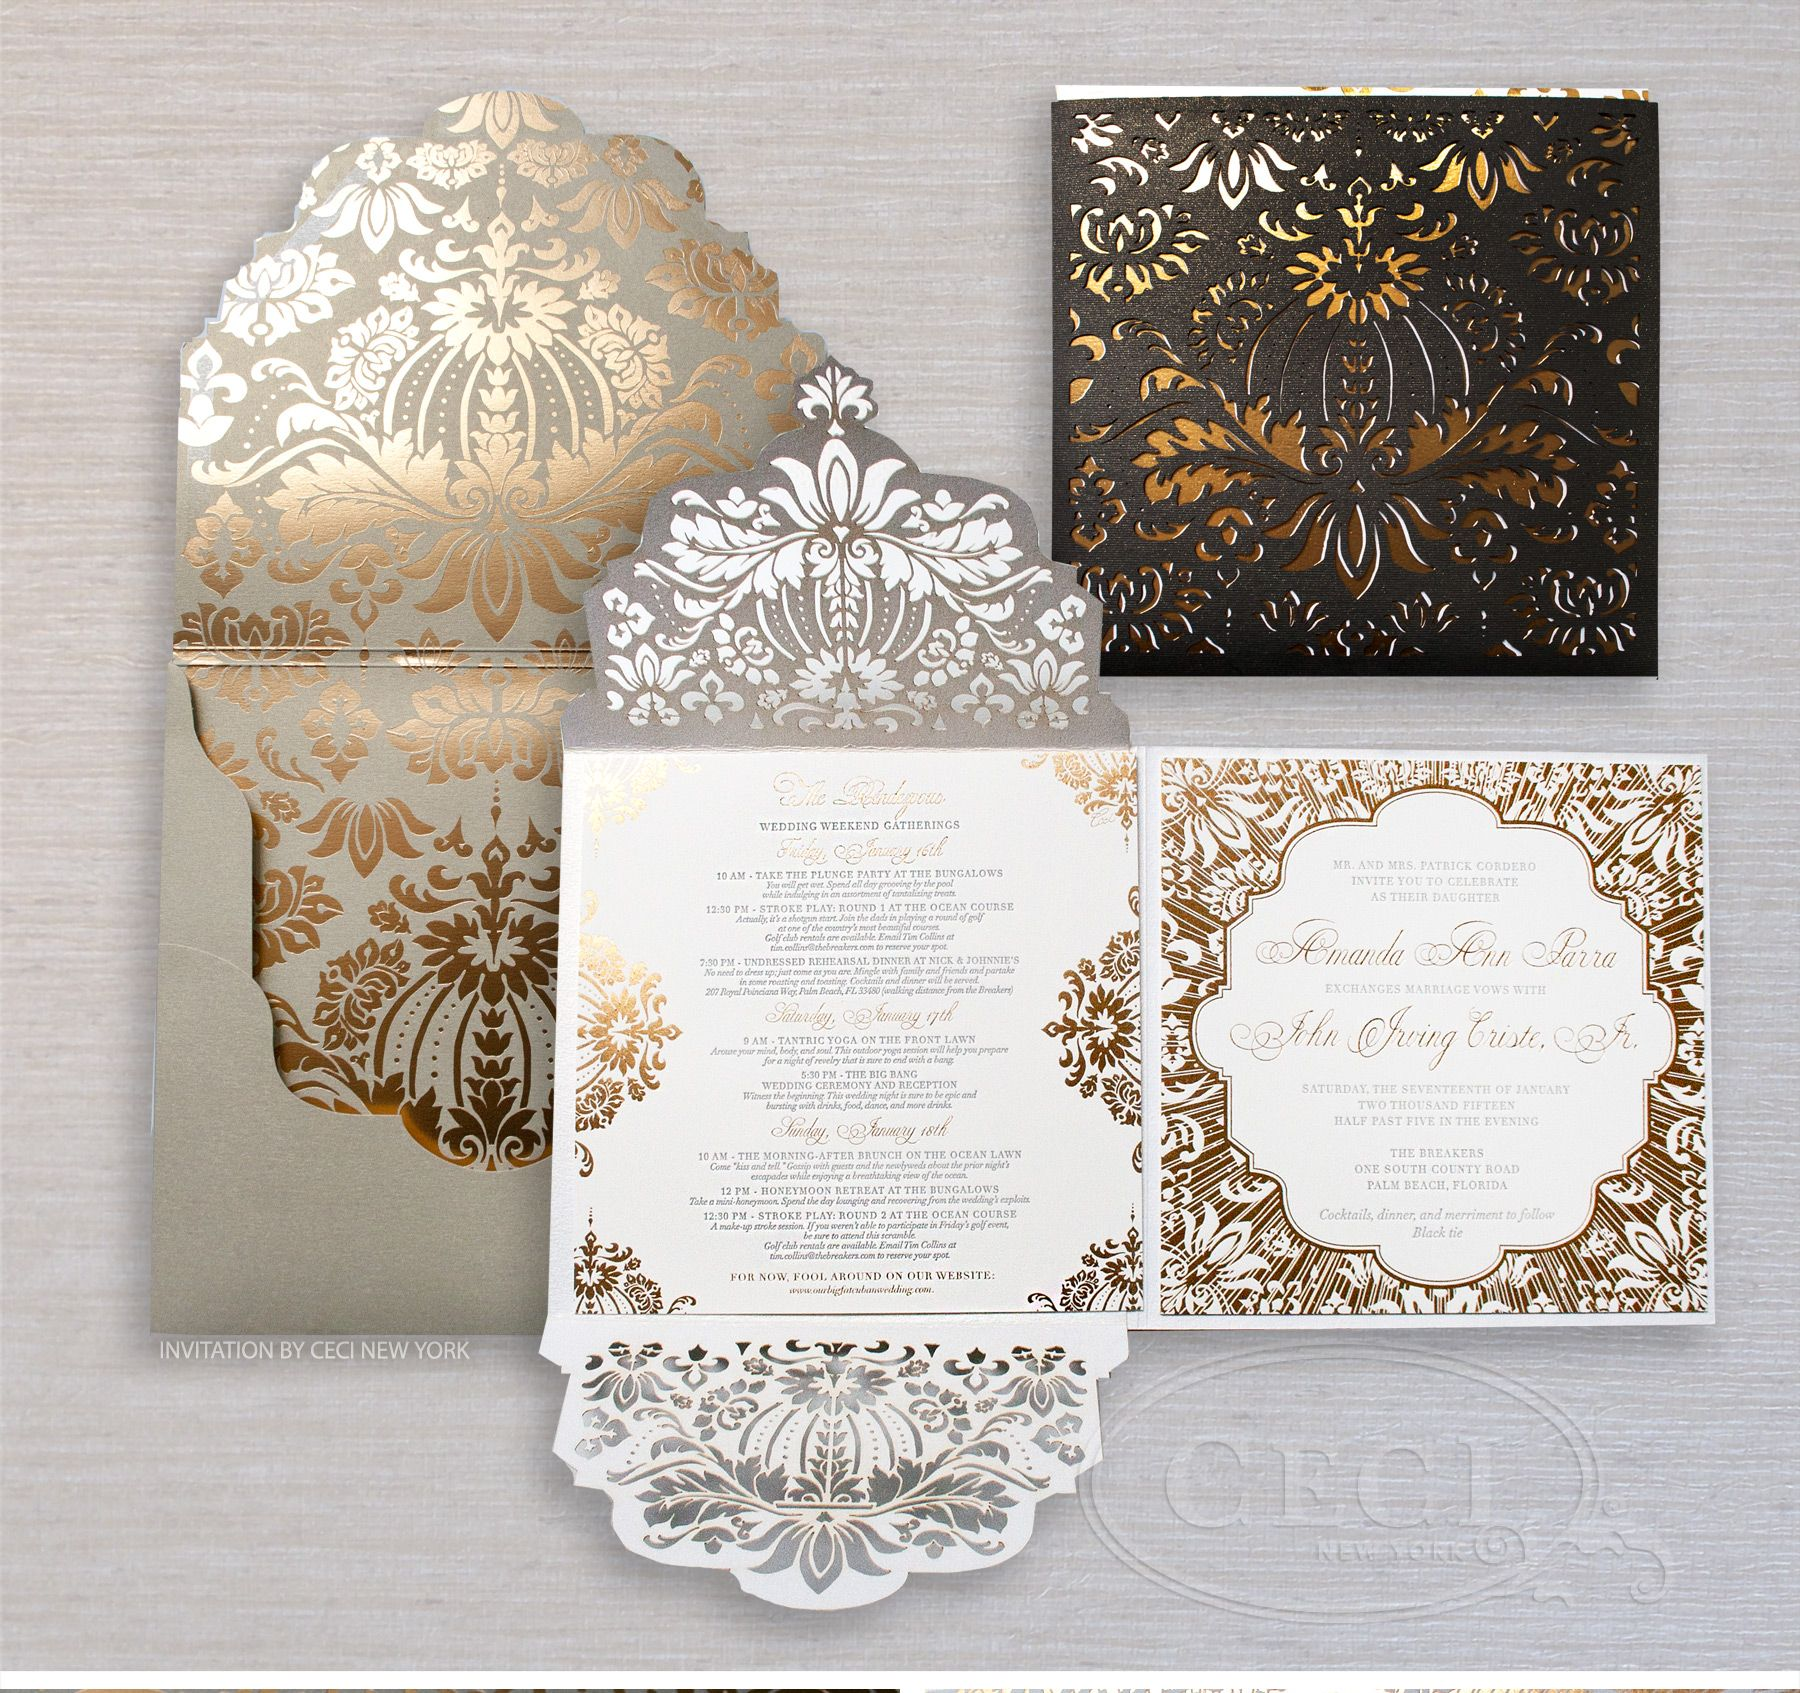 Luxury wedding invitations by ceci new york our muse for Luxury wedding invitations dubai